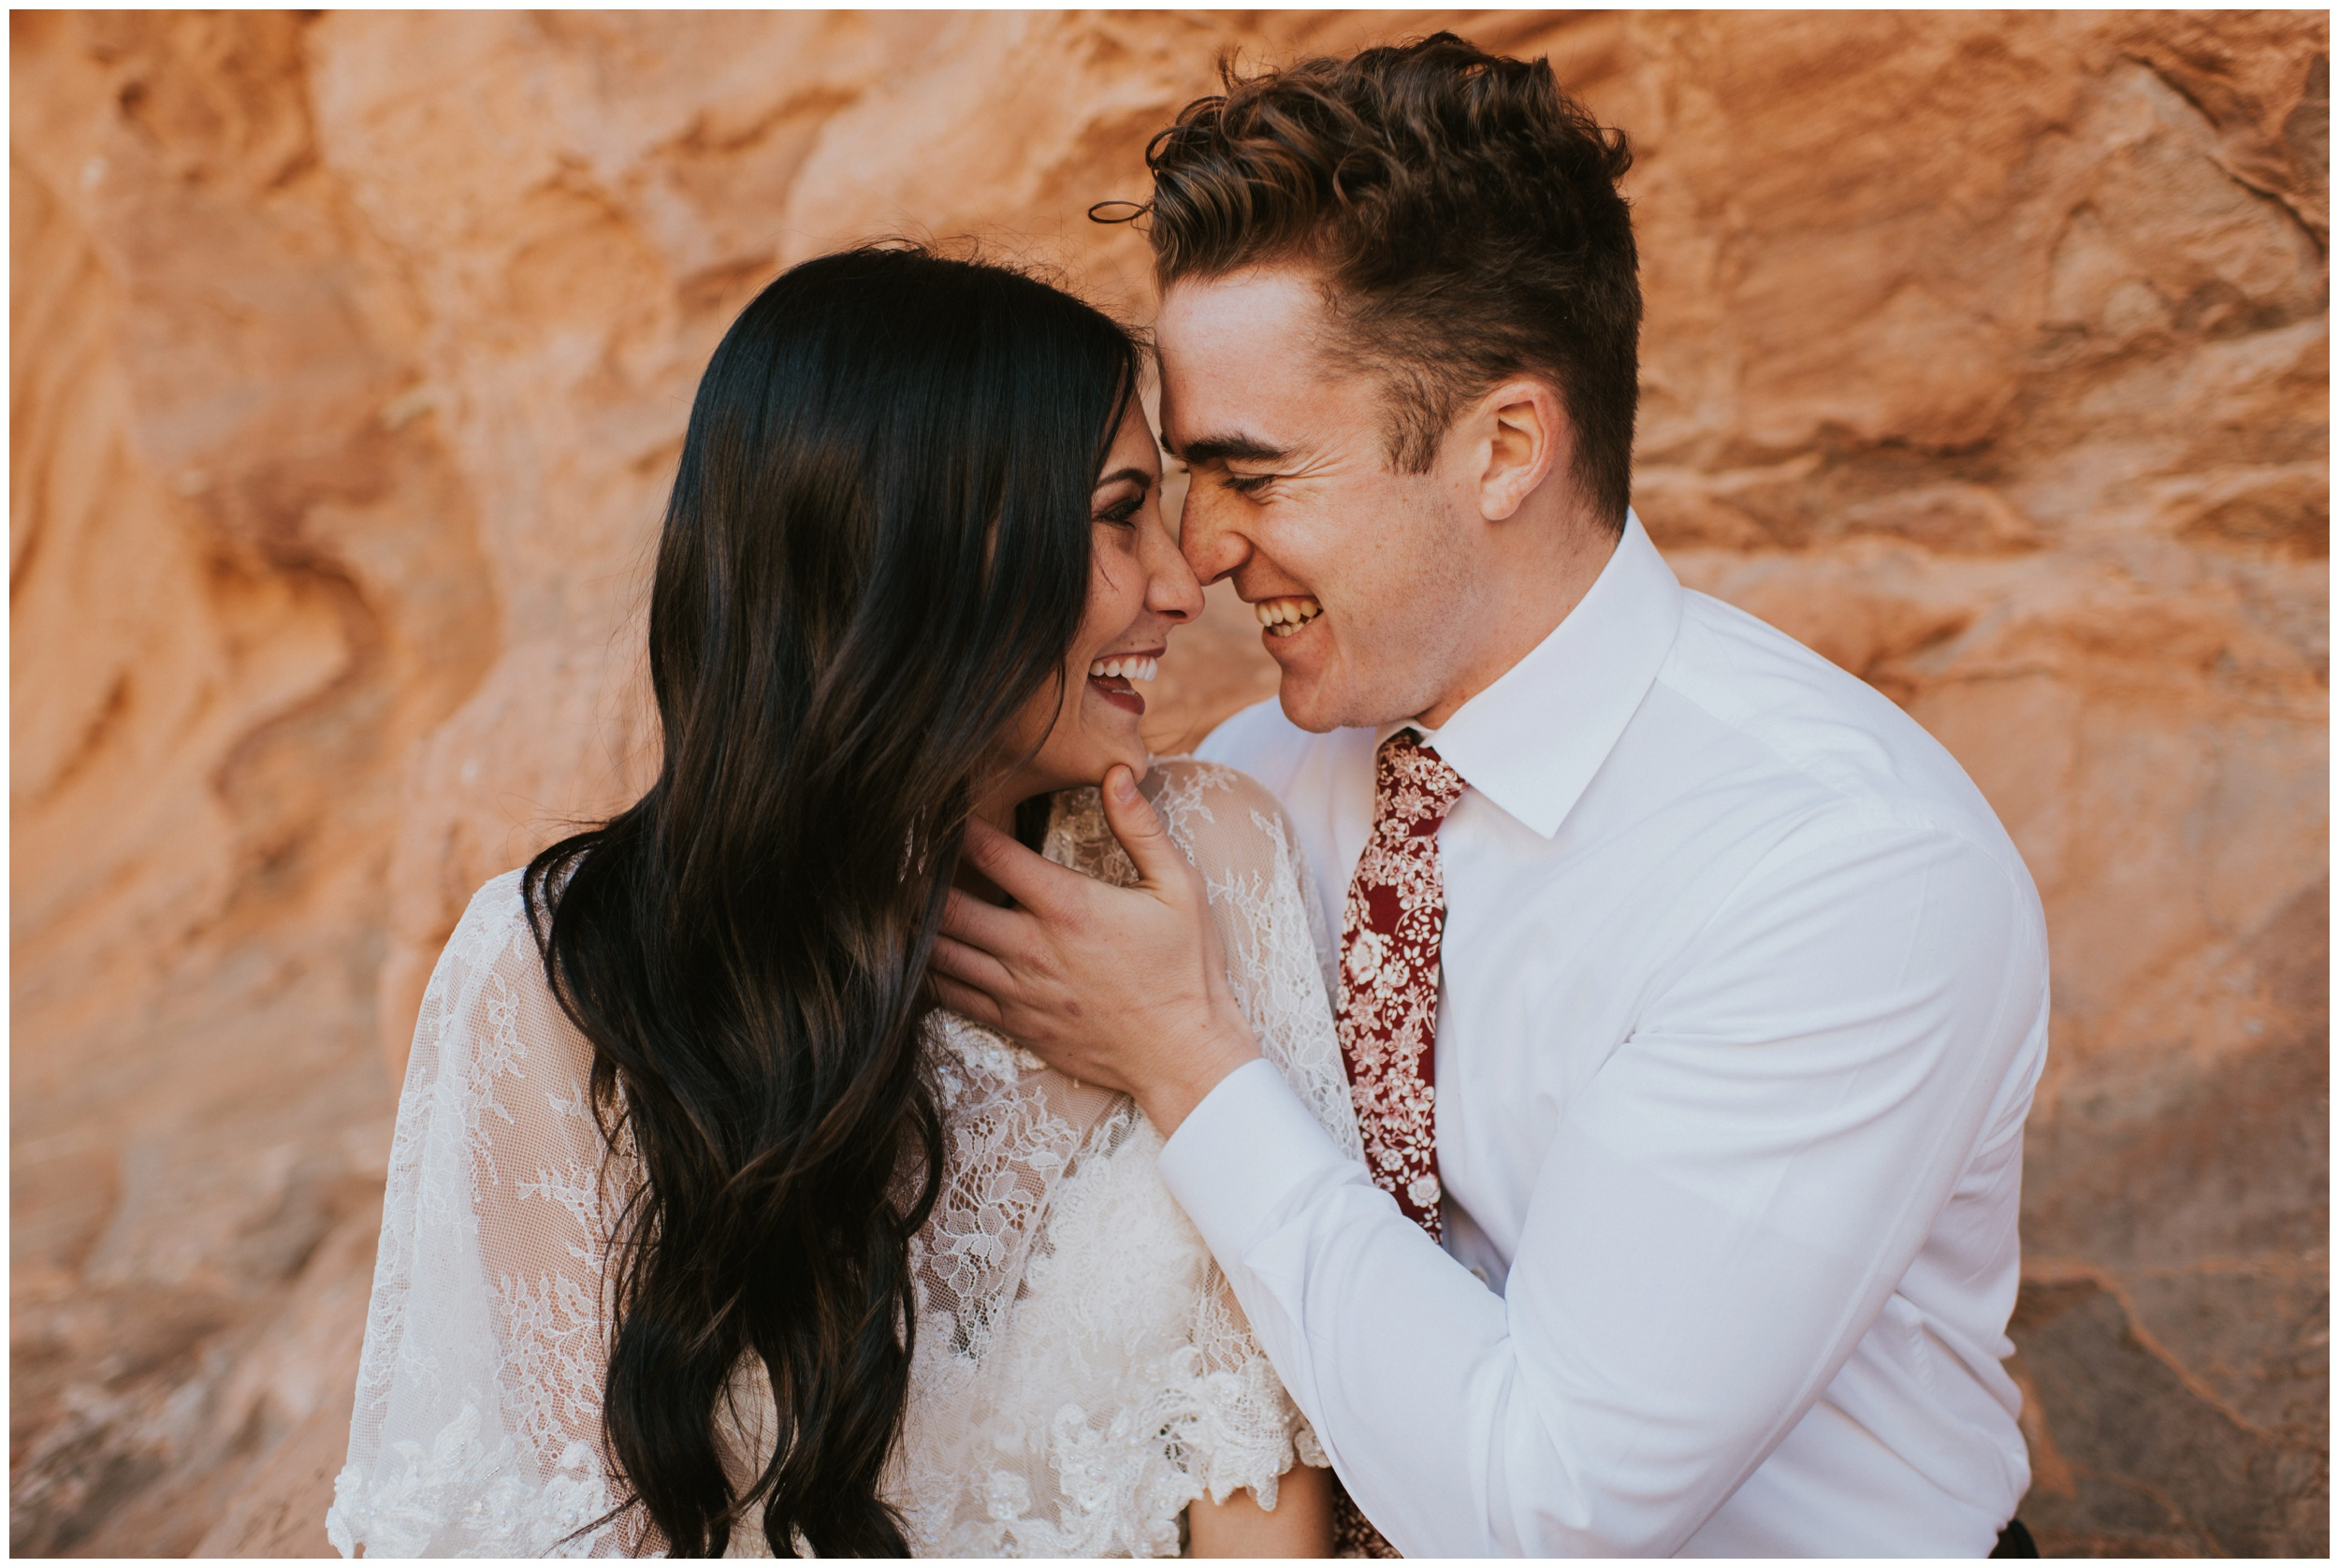 redrockutah-idahophotographer-utahphotographer-wedding-73.jpg